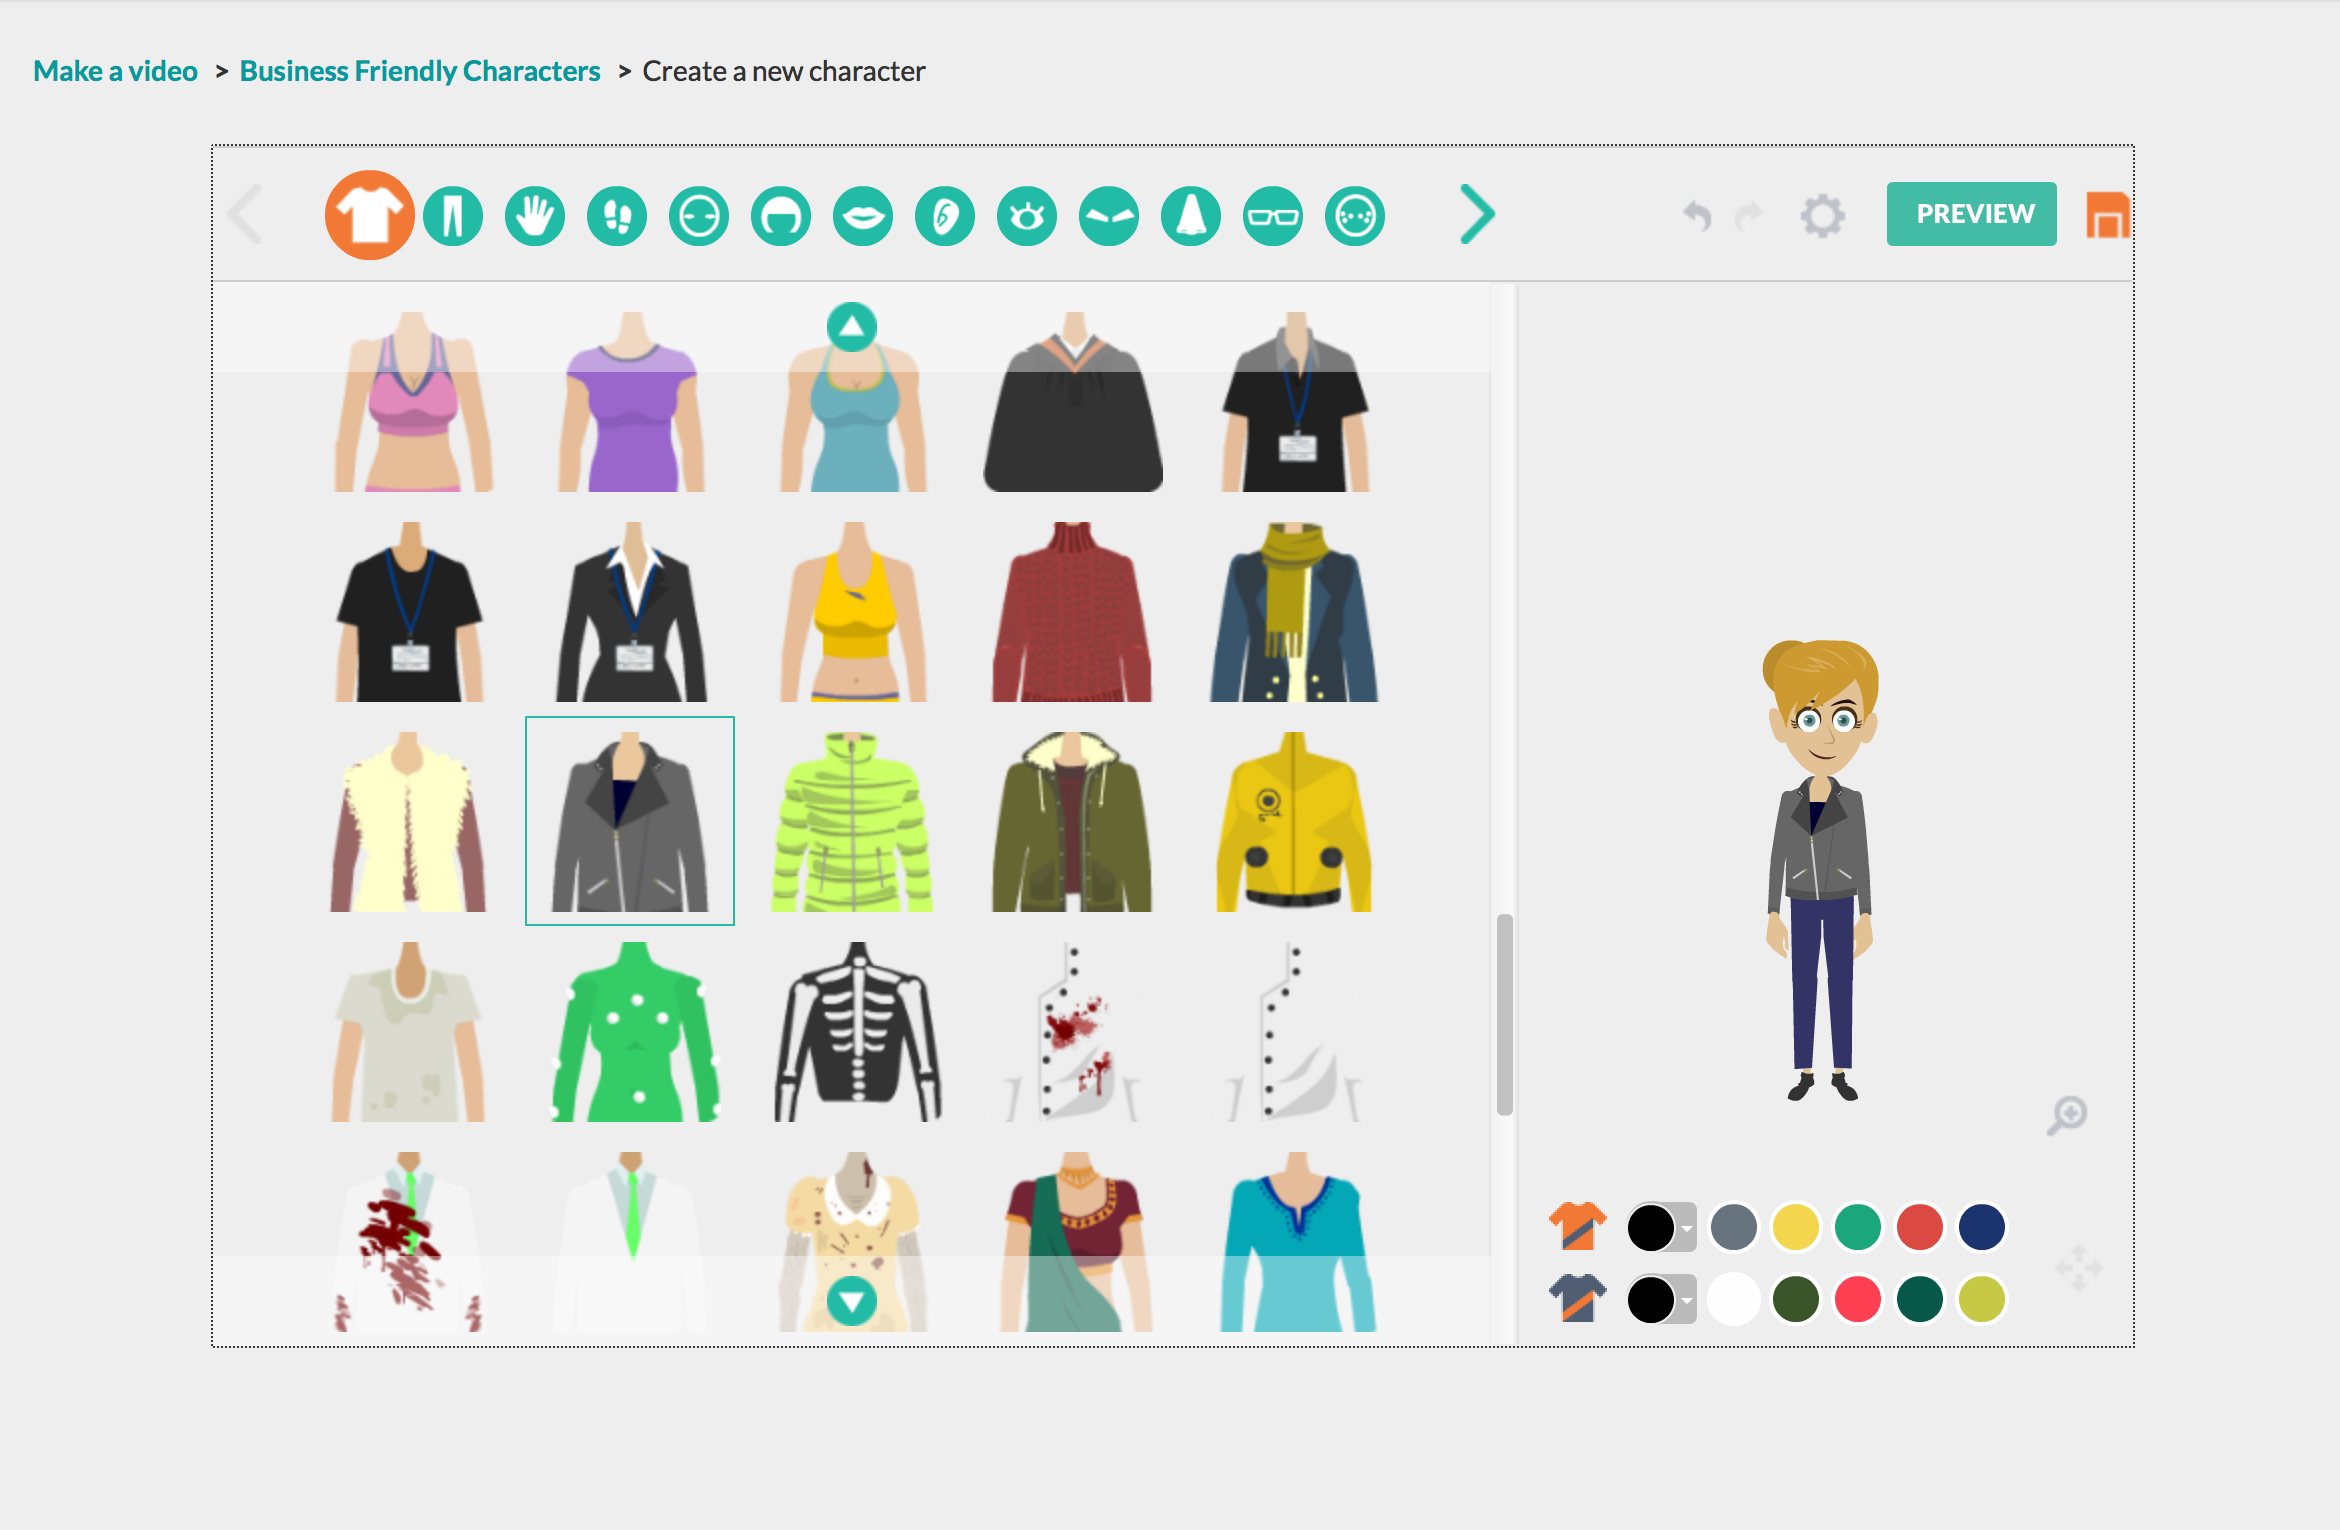 GoAnimate, a platform for creating online animated videos